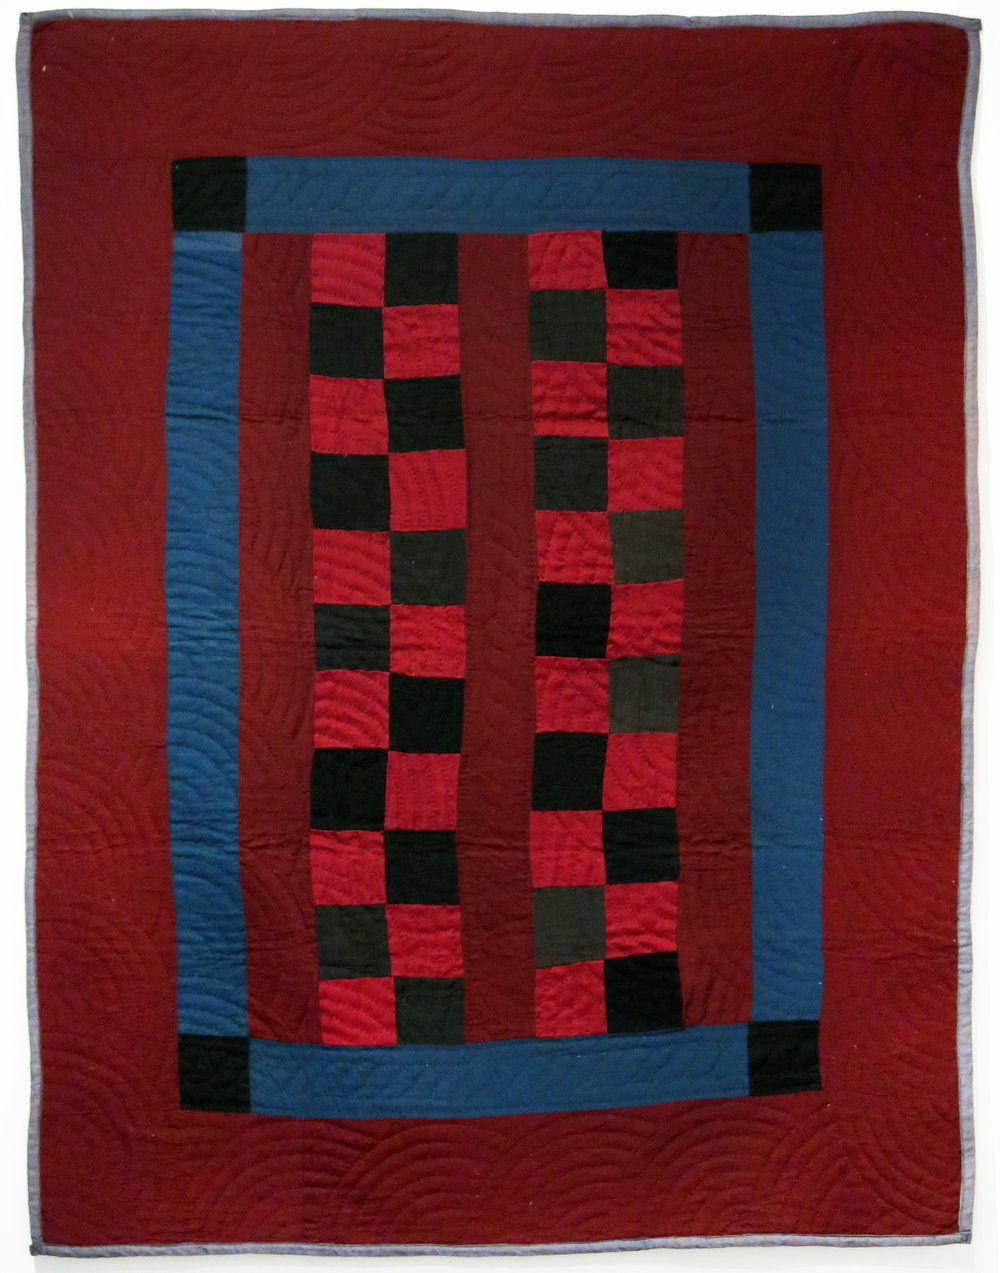 Amish, Lancaster County, PA,  Amish Four Patch Bars Pieced Crib Quilt , c. 1920s, wool, 50h x 38w in.